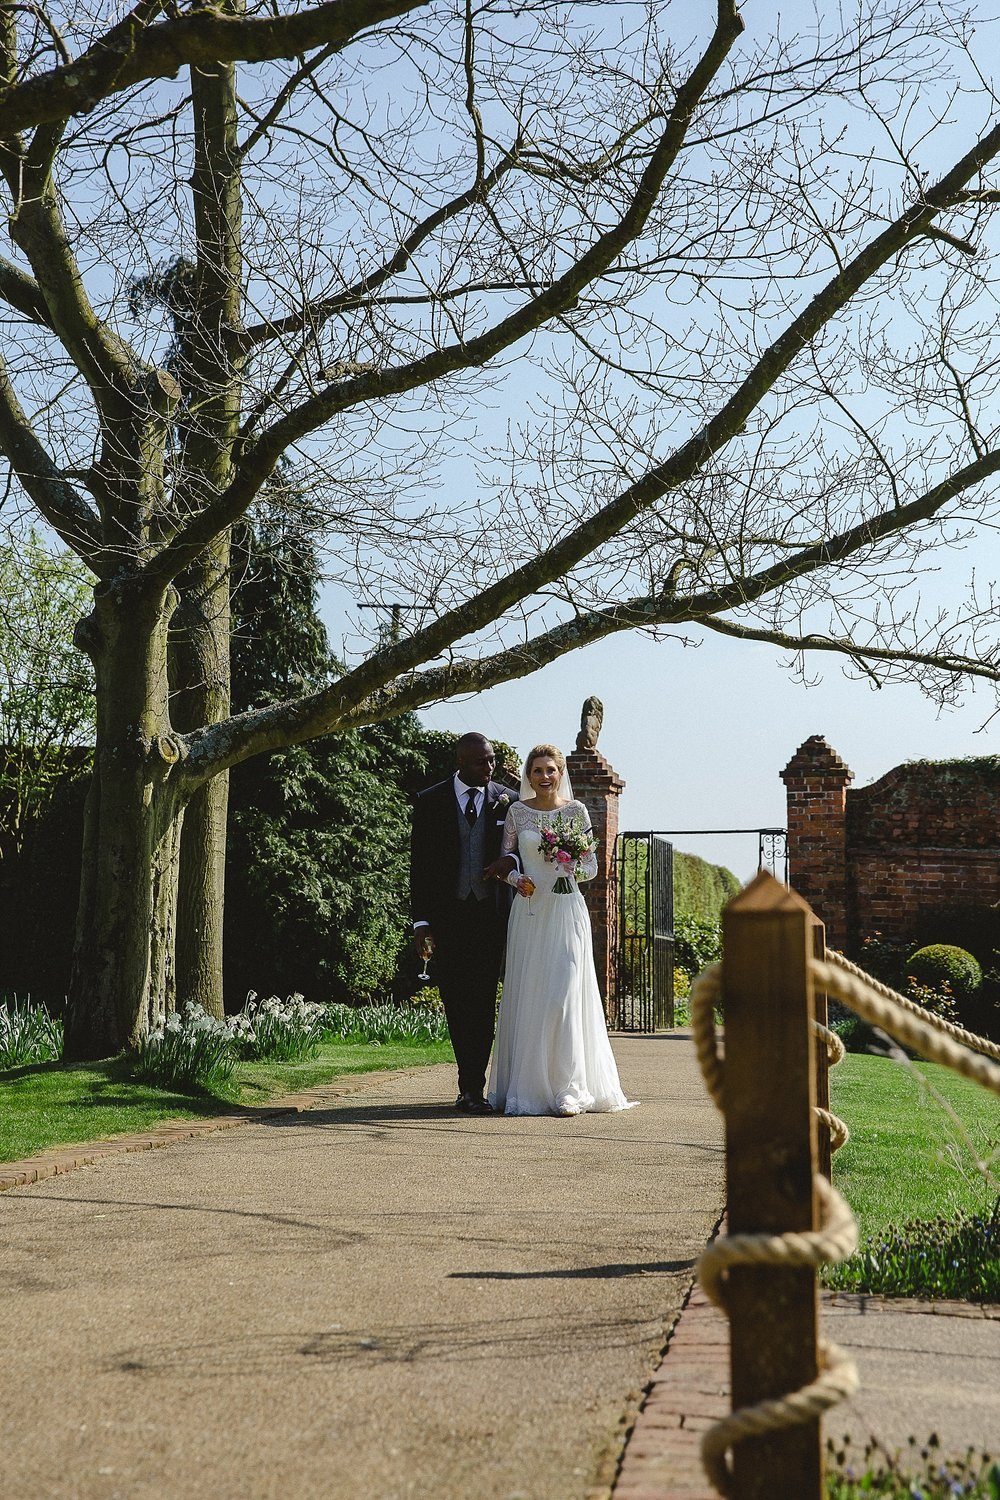 Gaynes Park Wedding - Essex Wedding Photographer